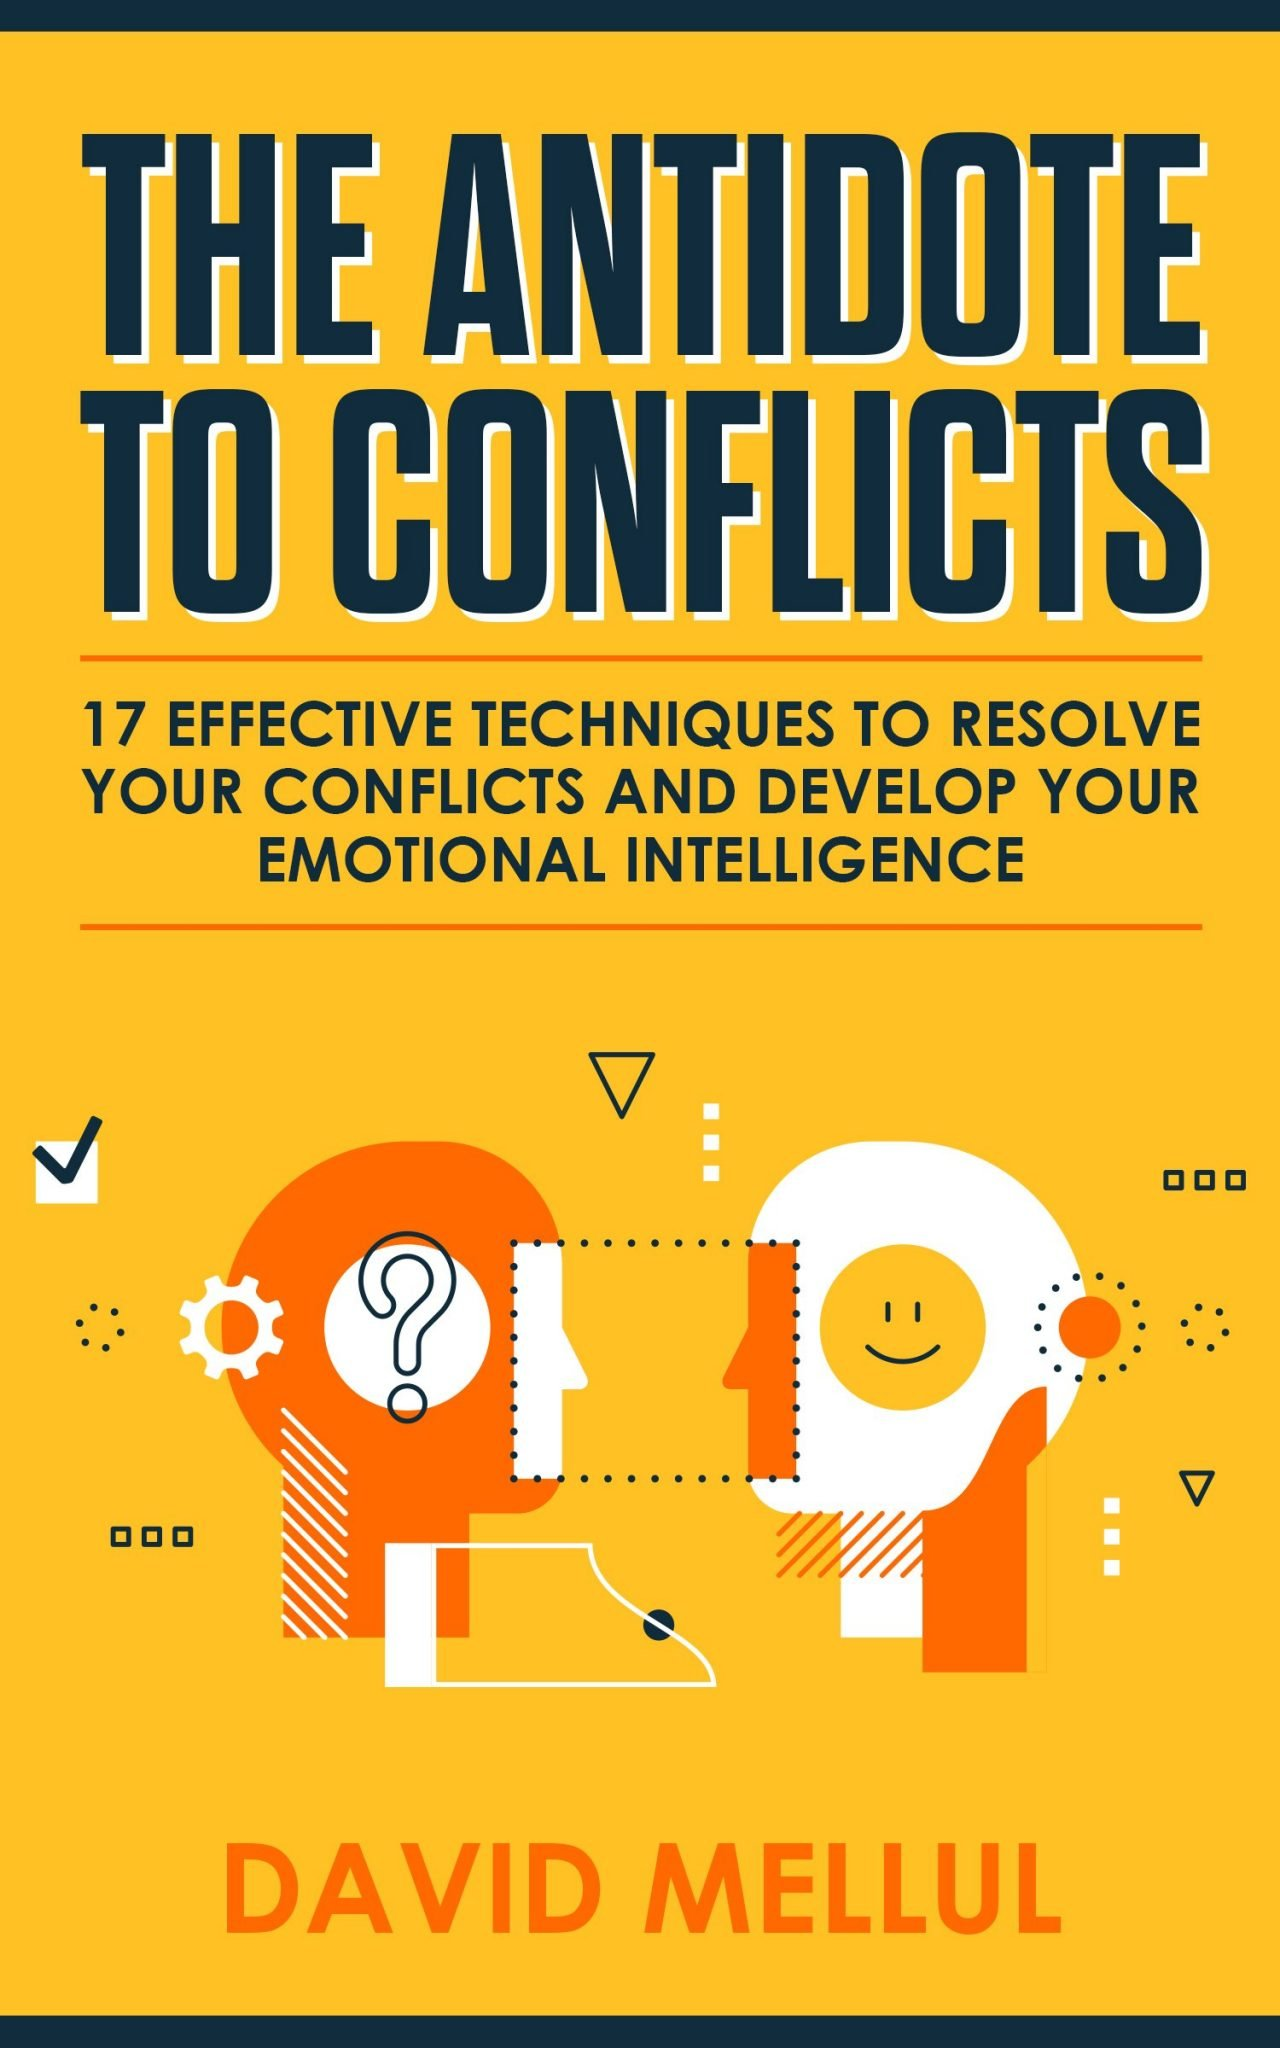 The Antidote to Conflicts: 17 Effective Techniques to Resolve Your Conflicts and Grow Your Emotional Intelligence